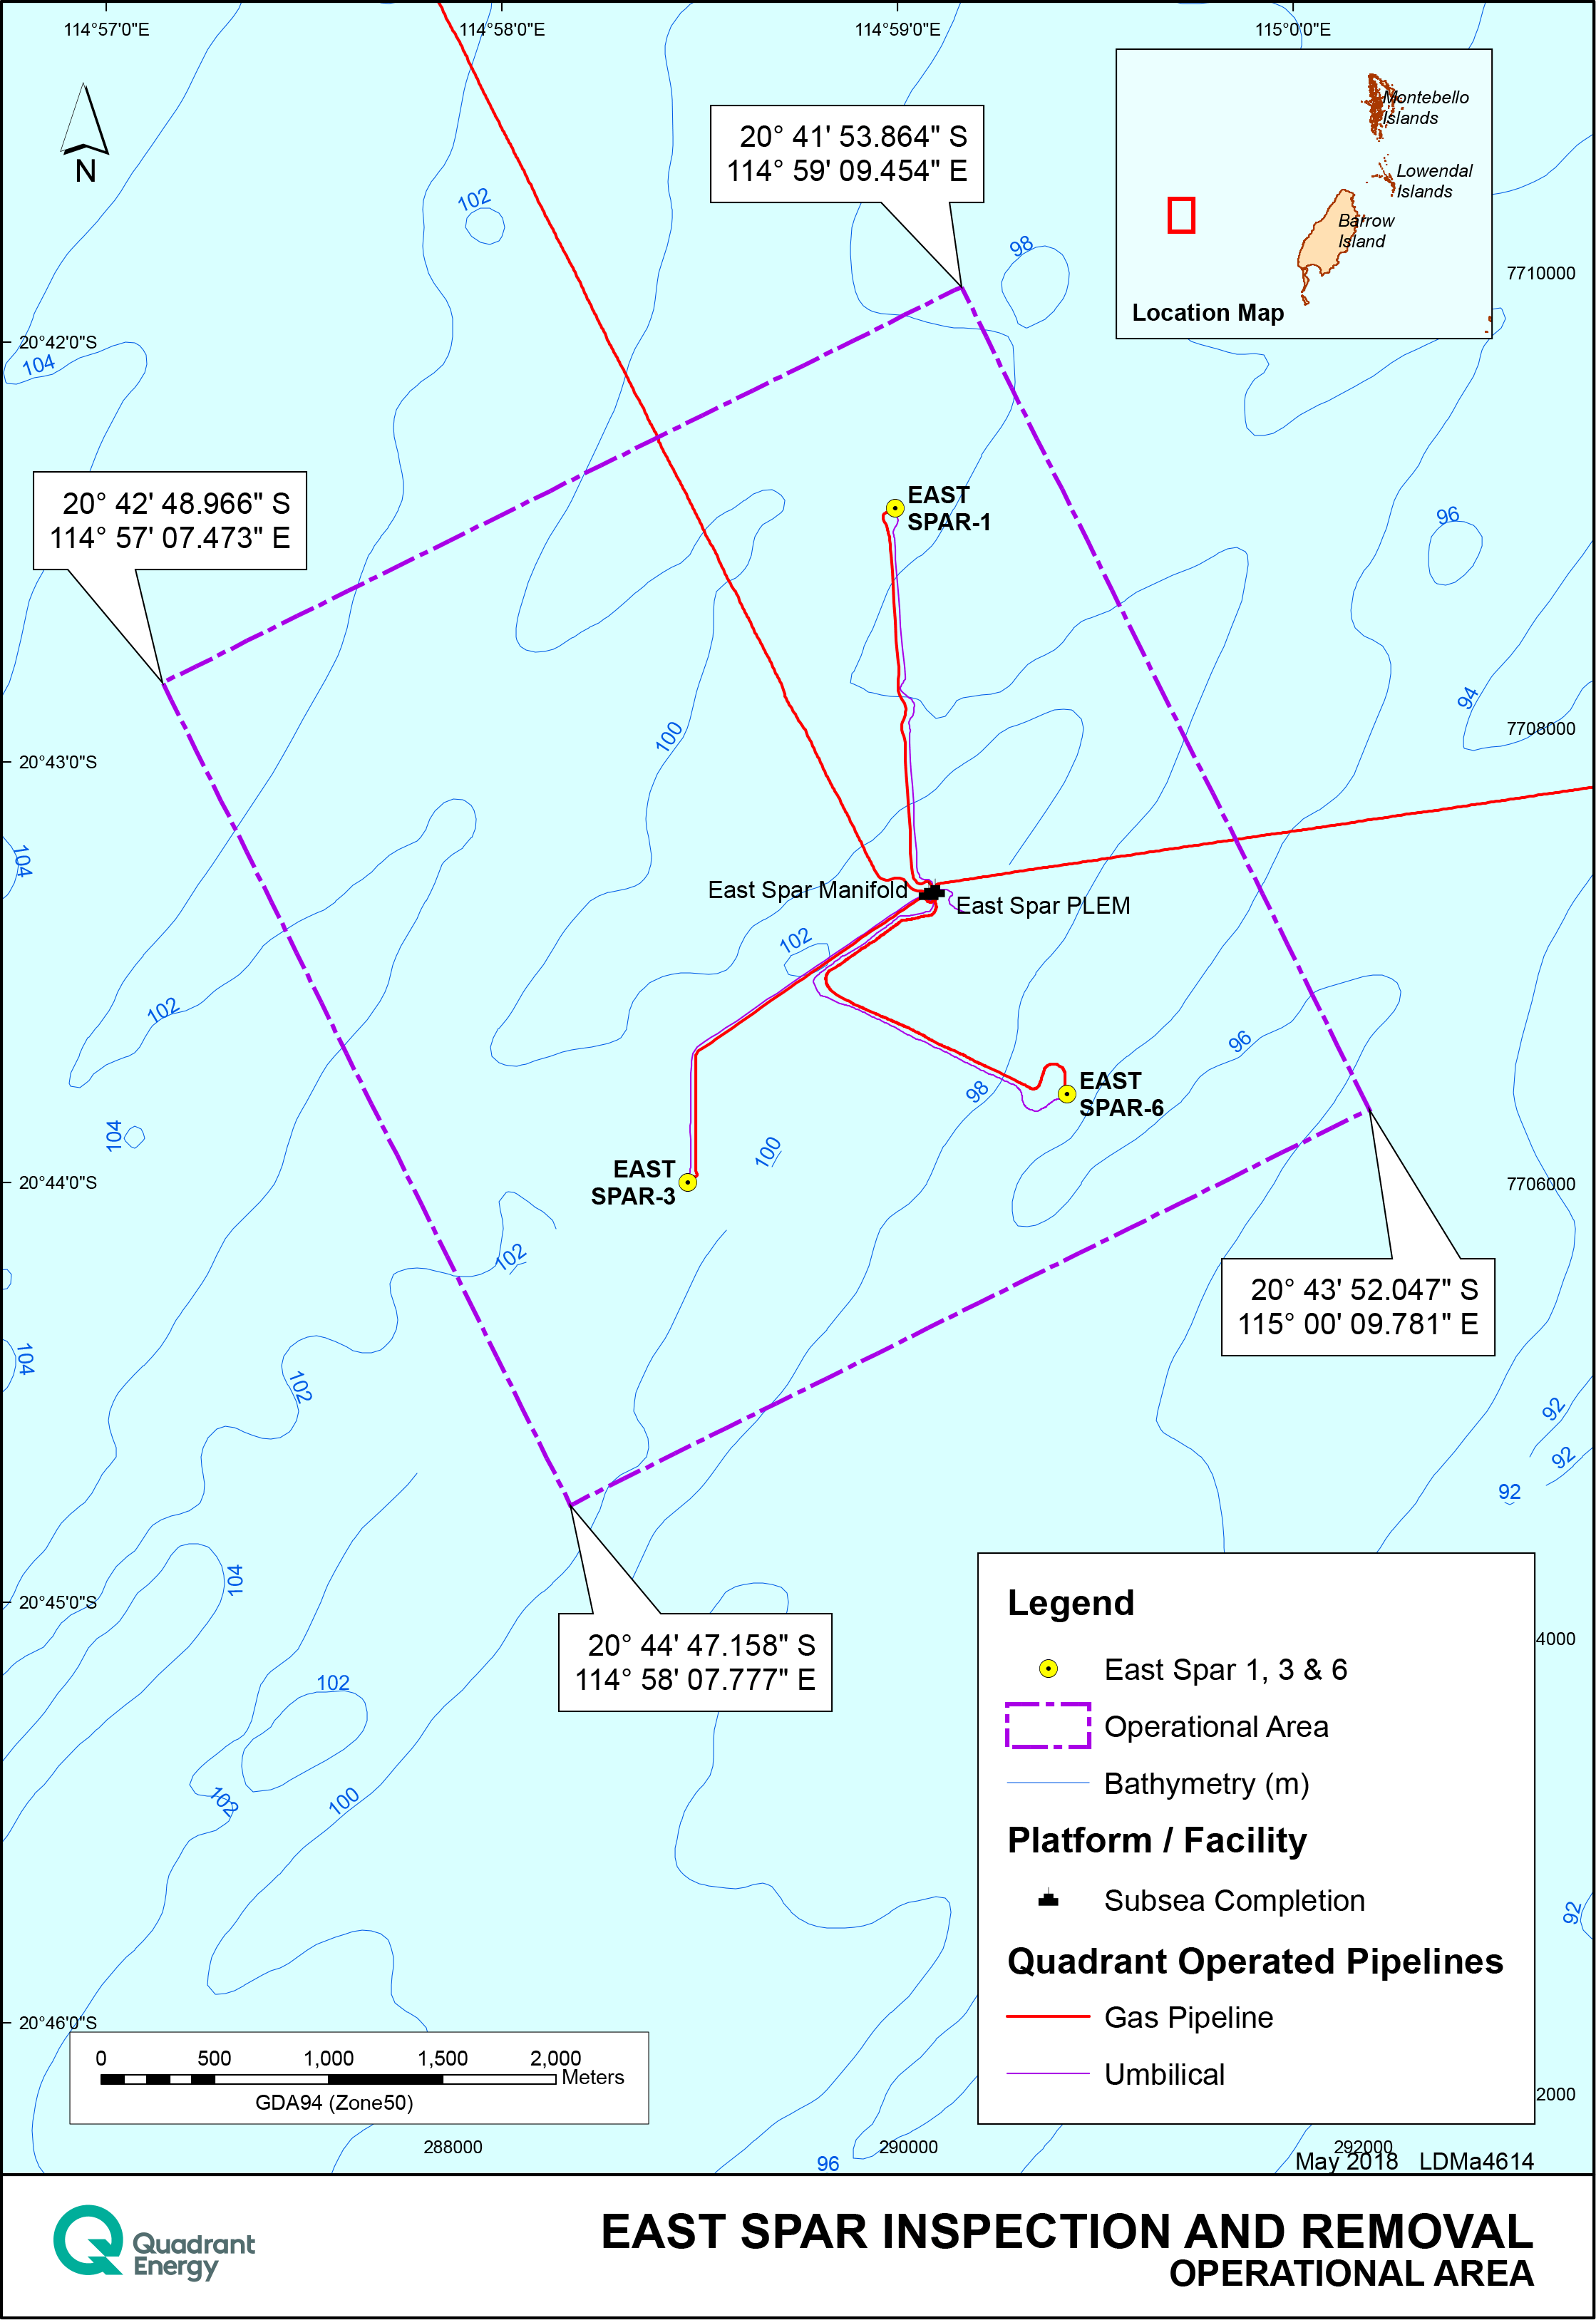 Location map - Activity: East Spar Inspection and Removal (refer to description)